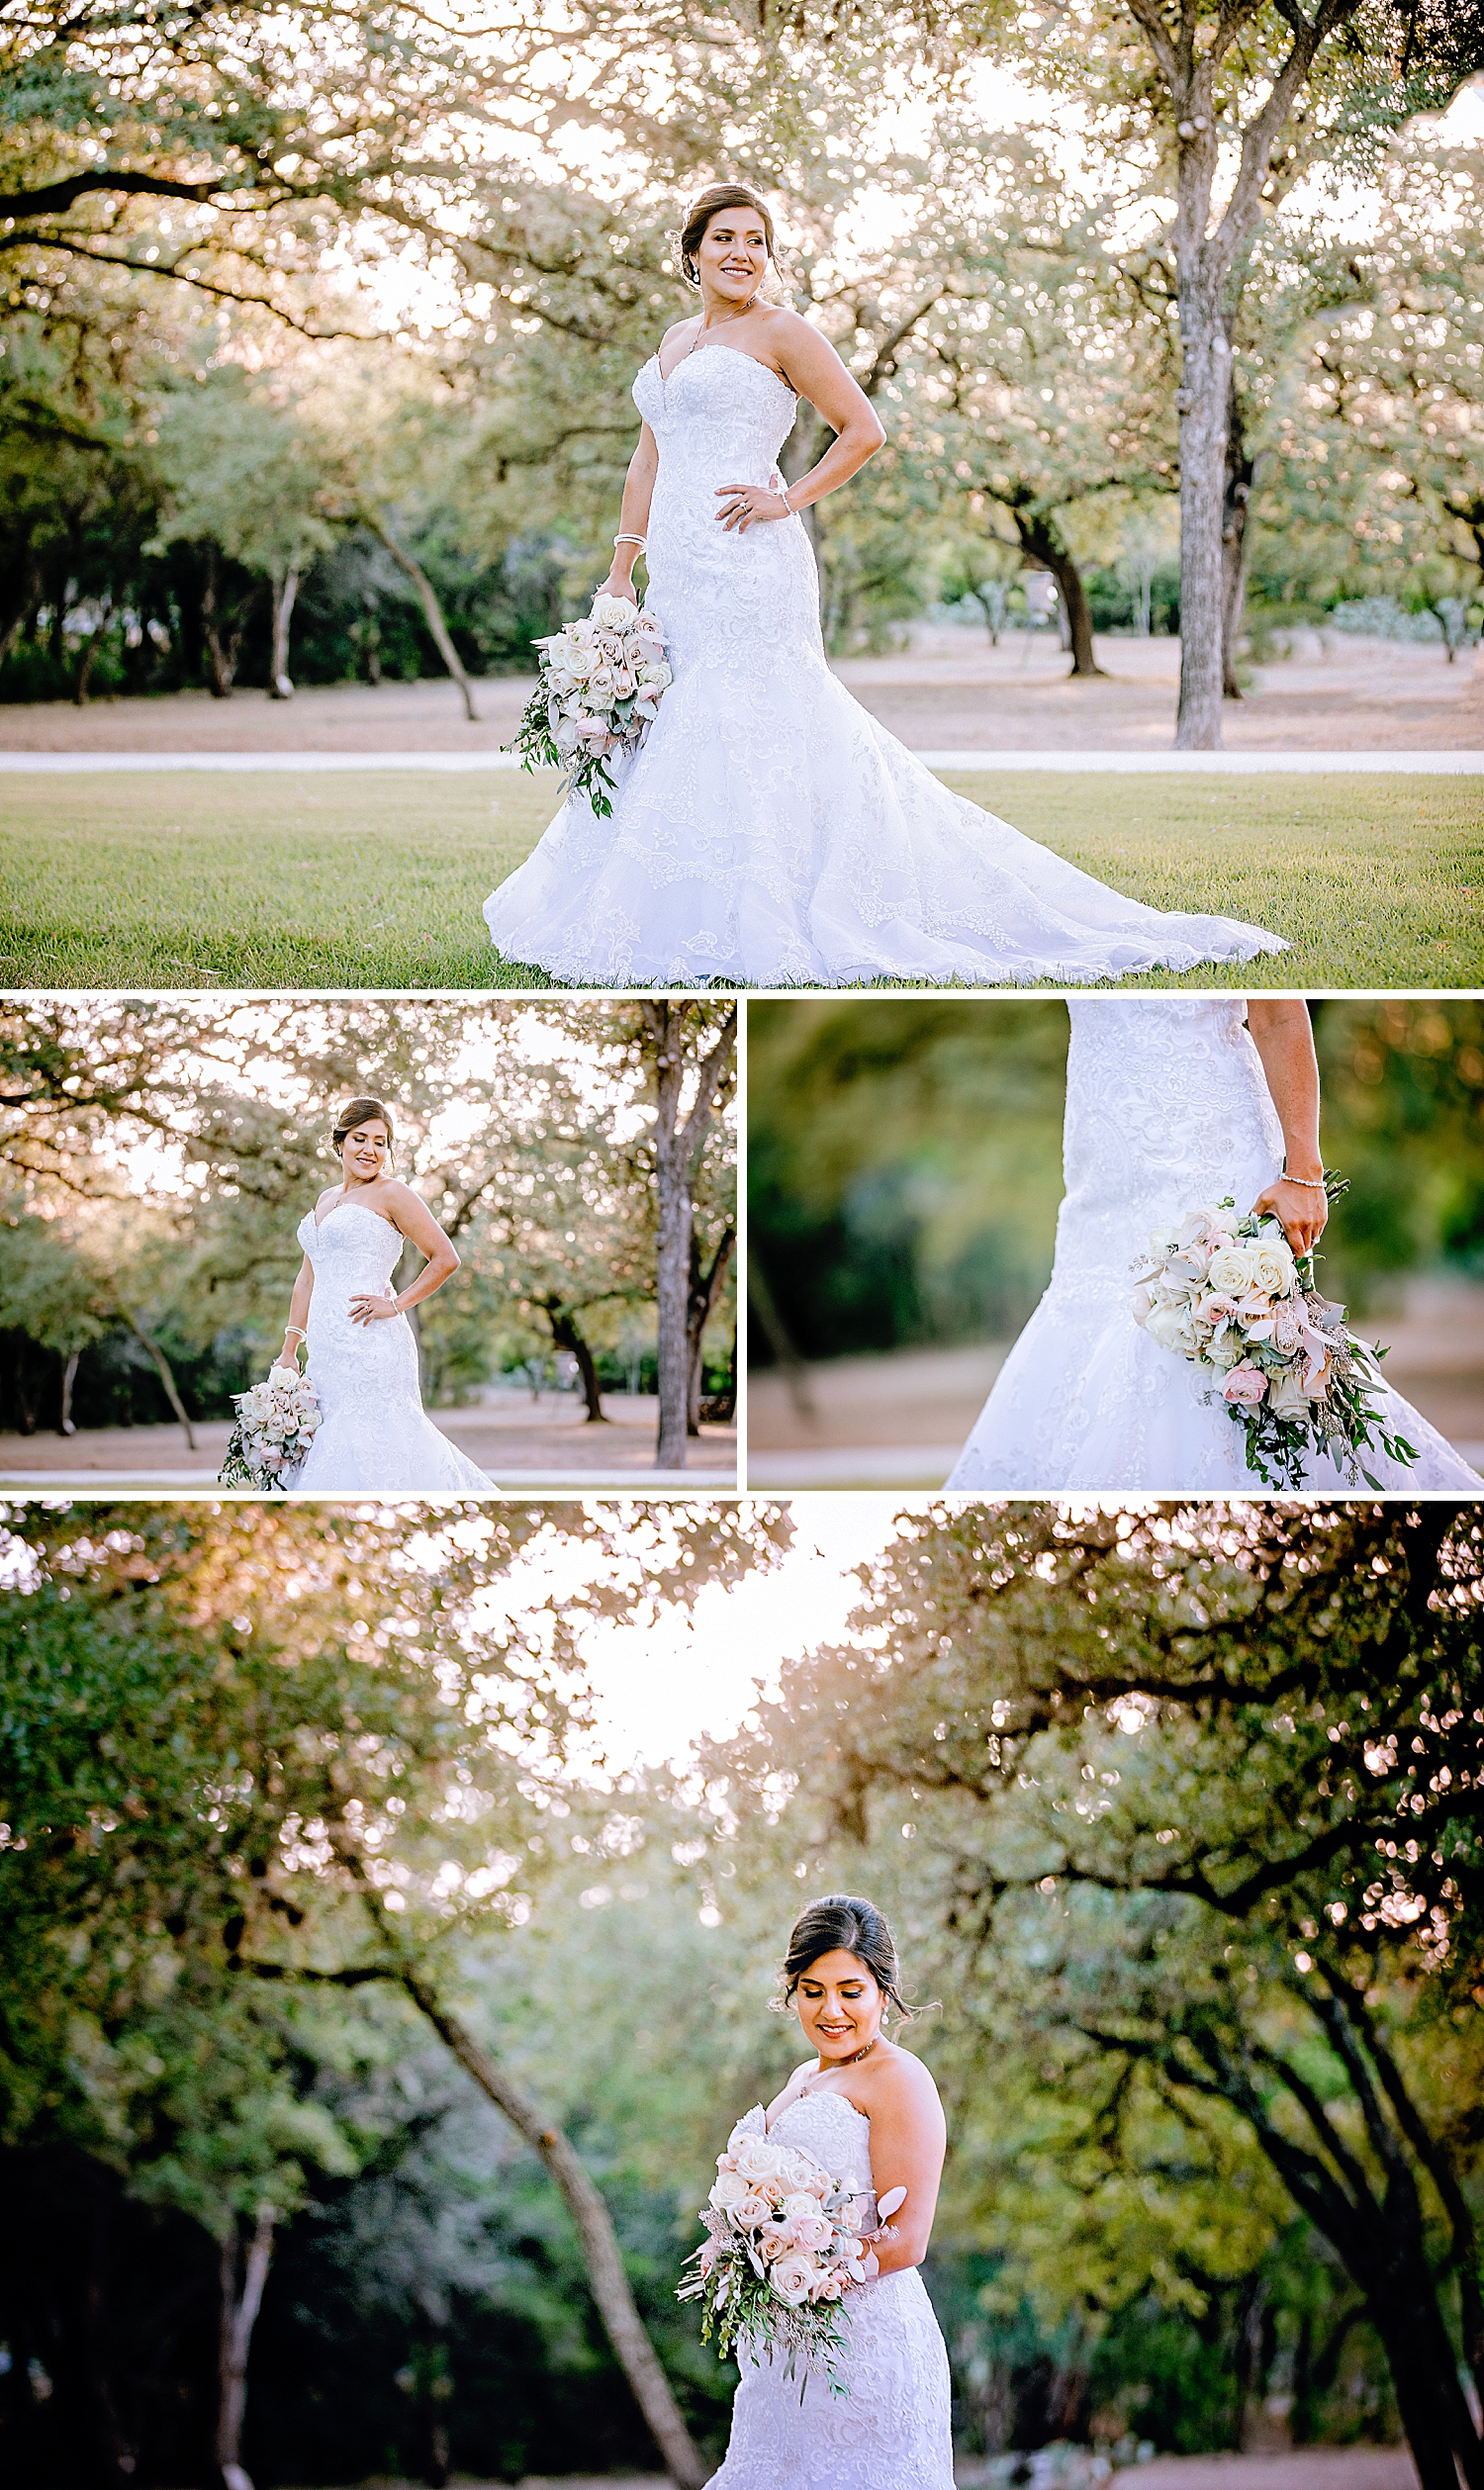 Carly-Barton-Photography-Bridal-Photos-Chadelier-of-Gruene-New-Braunfels-Wedding-Photographer_0023.jpg